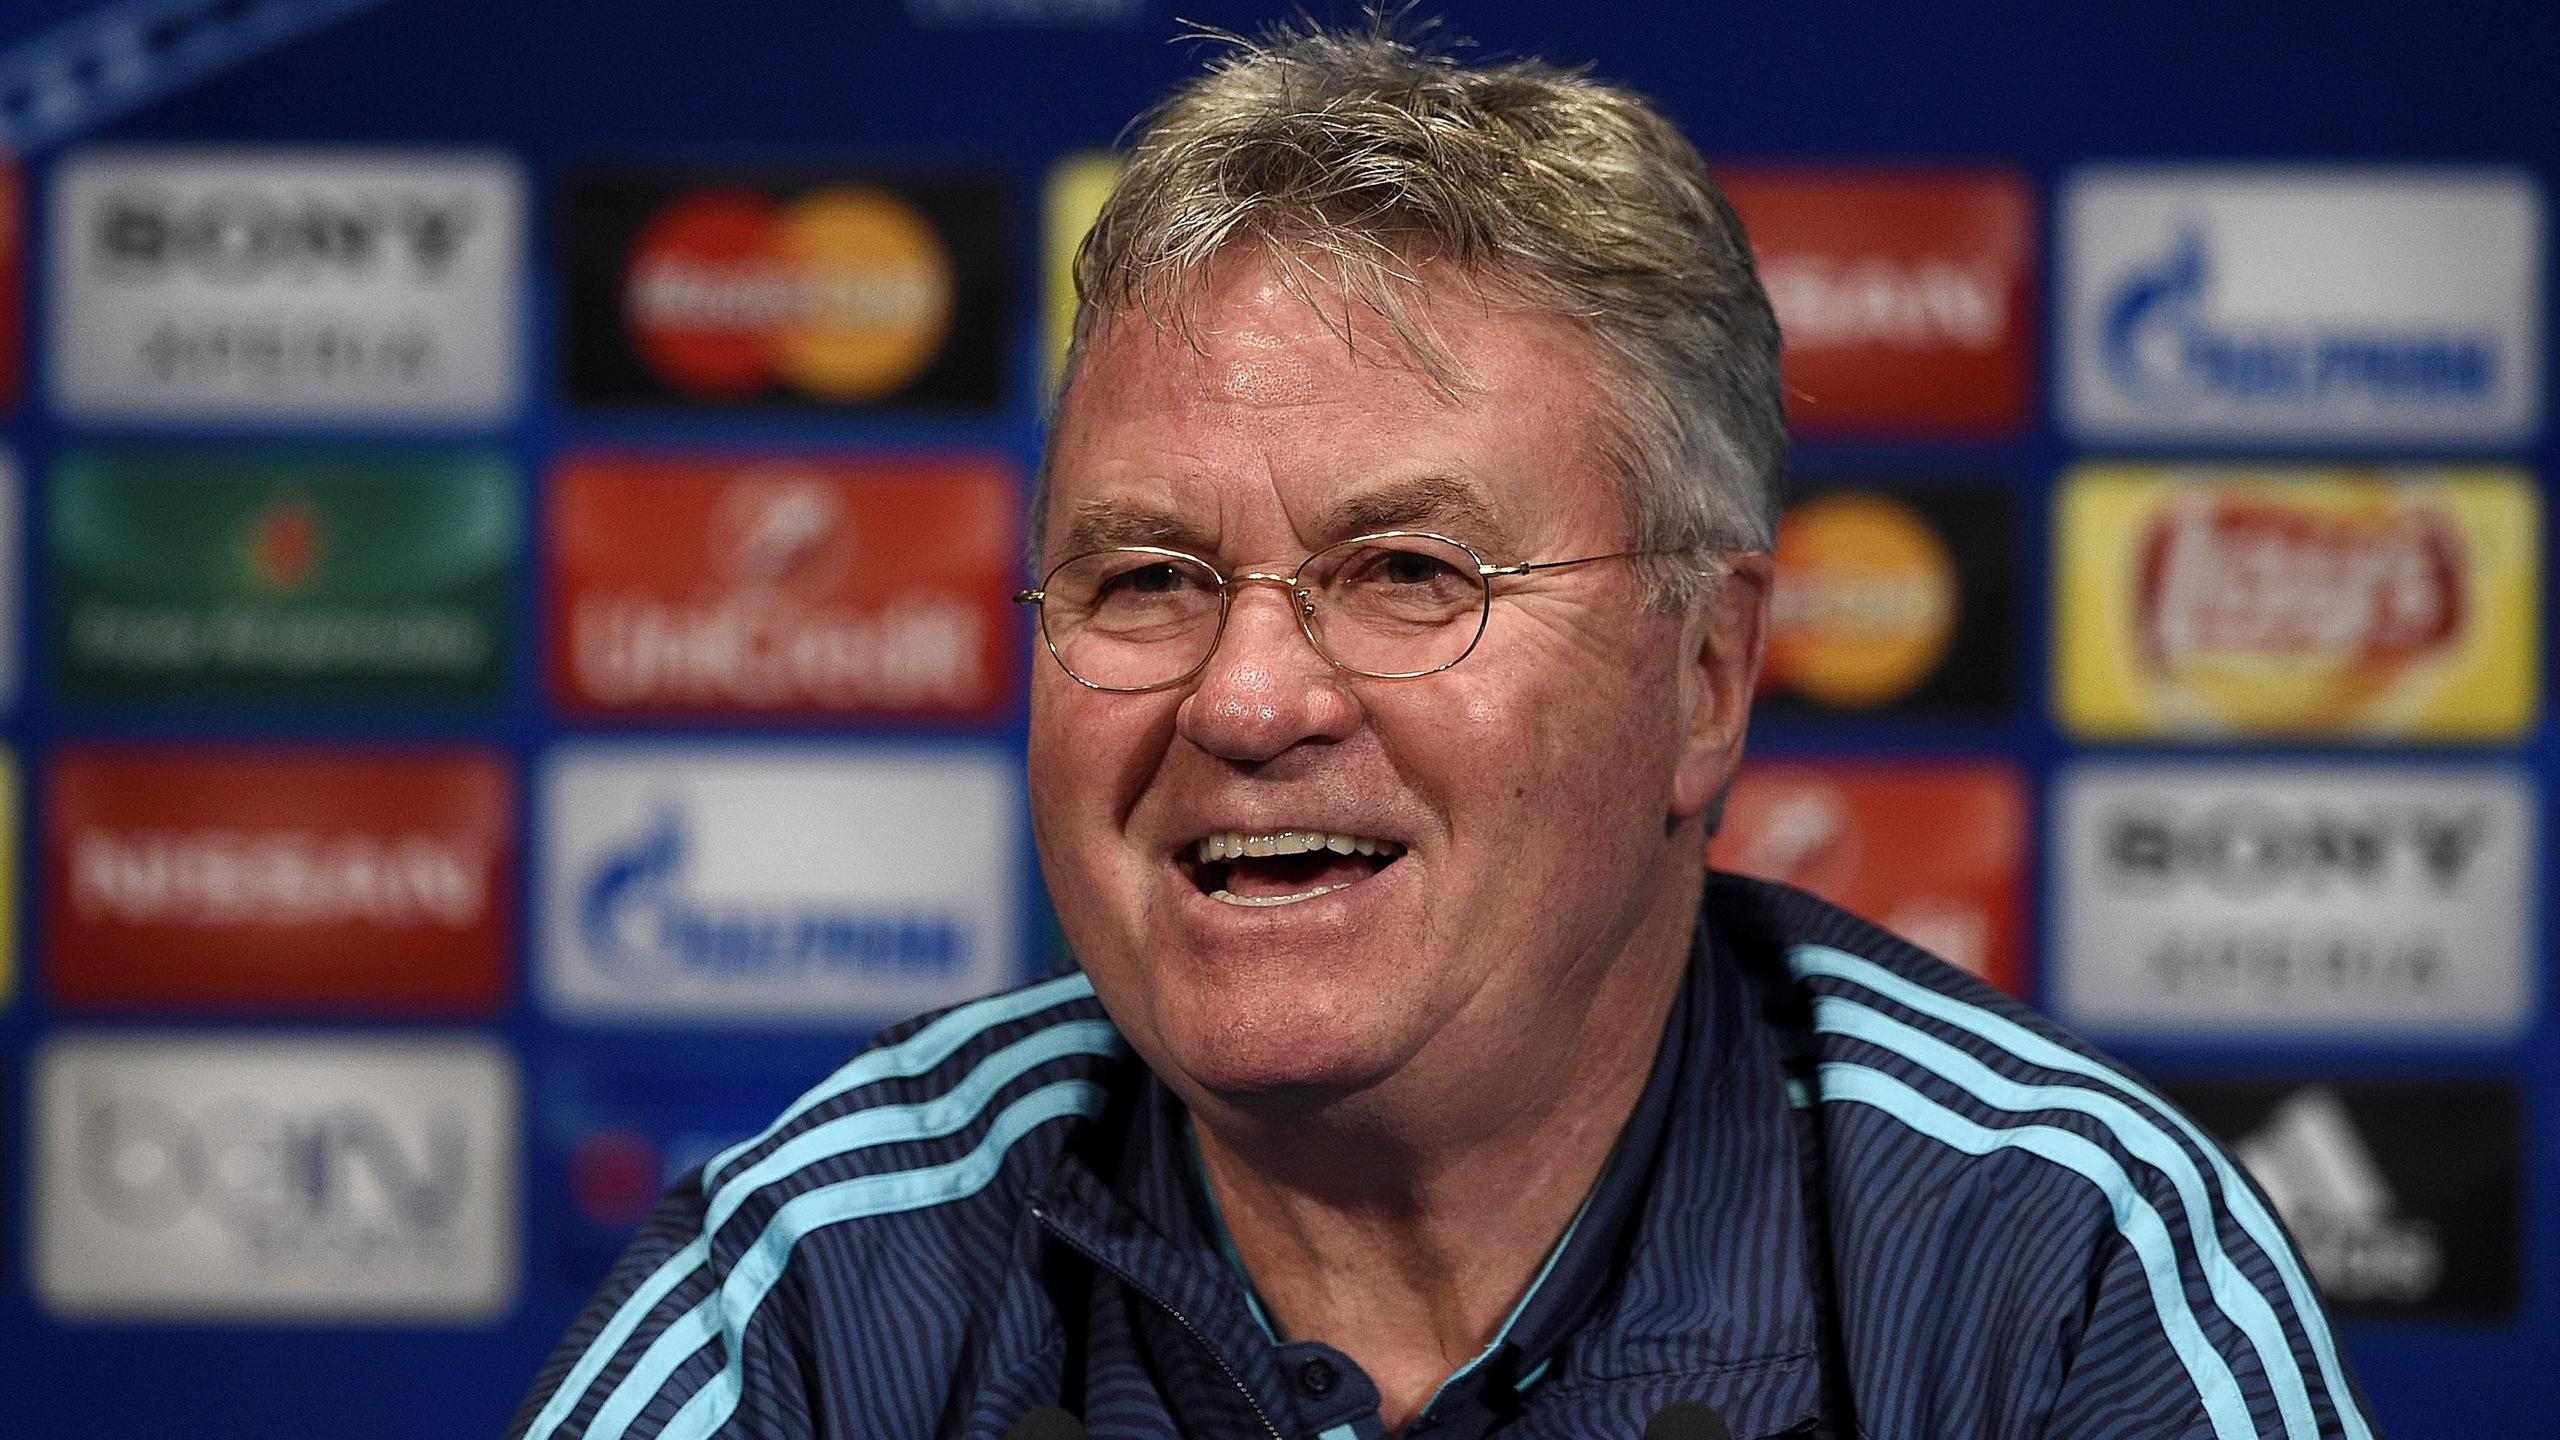 Chelsea's football club Dutch manager Guus Hiddink smiles during a press conference